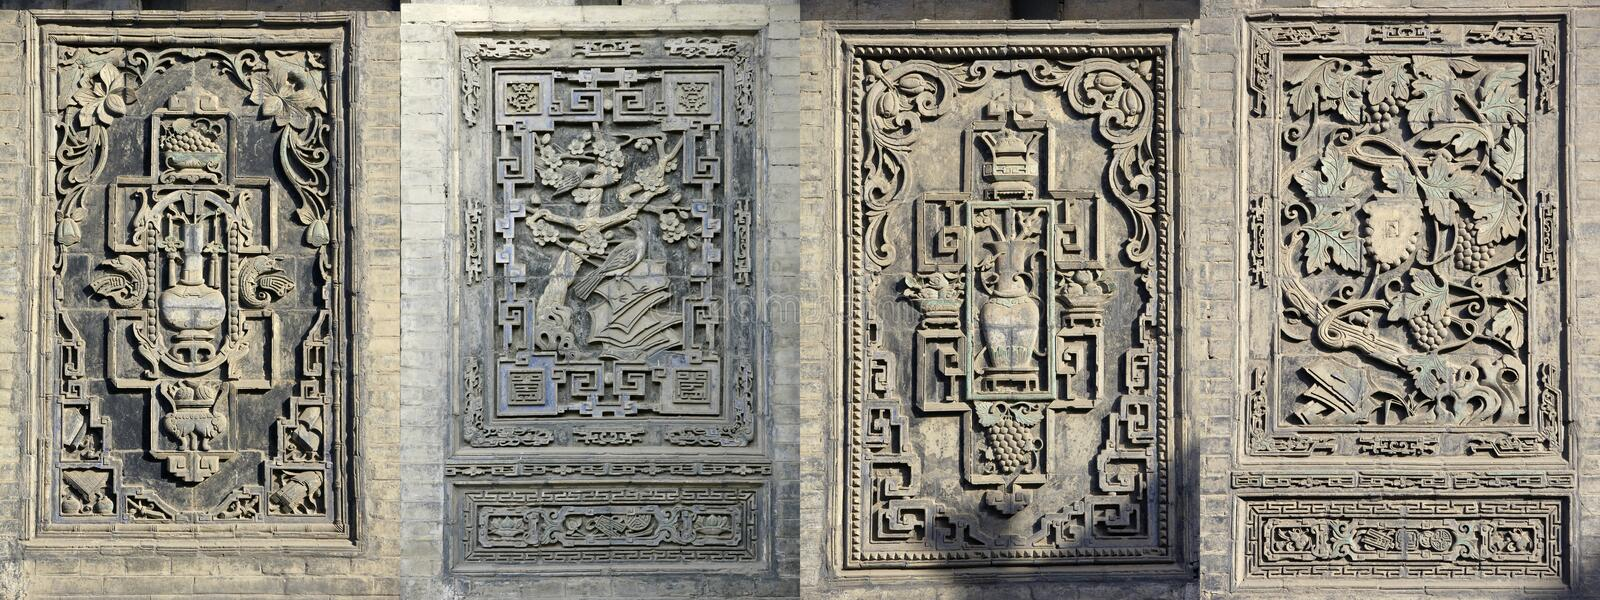 Chinese folk brick carving. Brick carving is a decoration on the wall in China's ancient stock photo